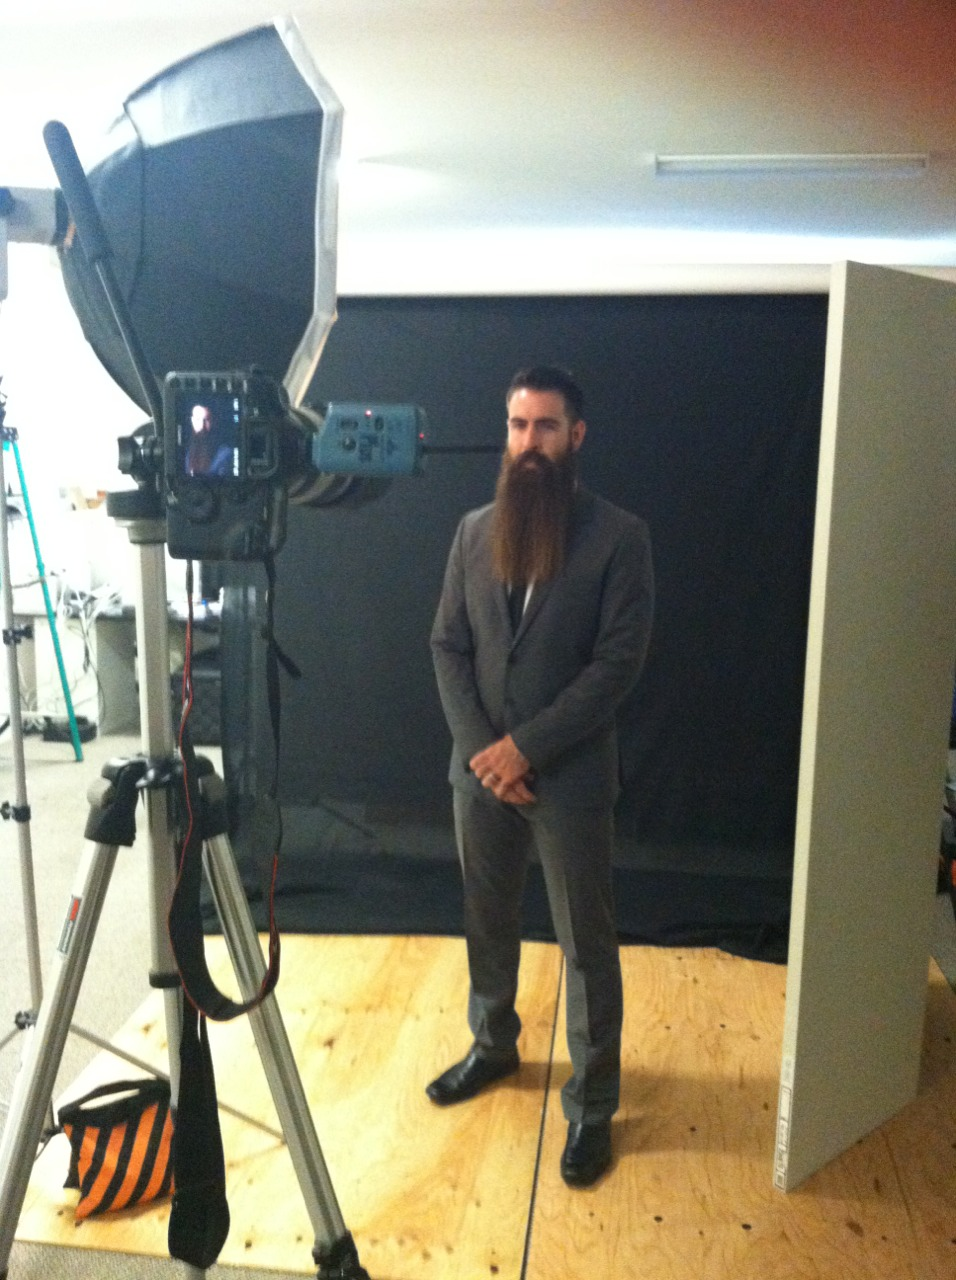 Happy Wednesday!    Here's a behind the scenes photo of my shoot today with Incredibeard.  More photos to come soon!